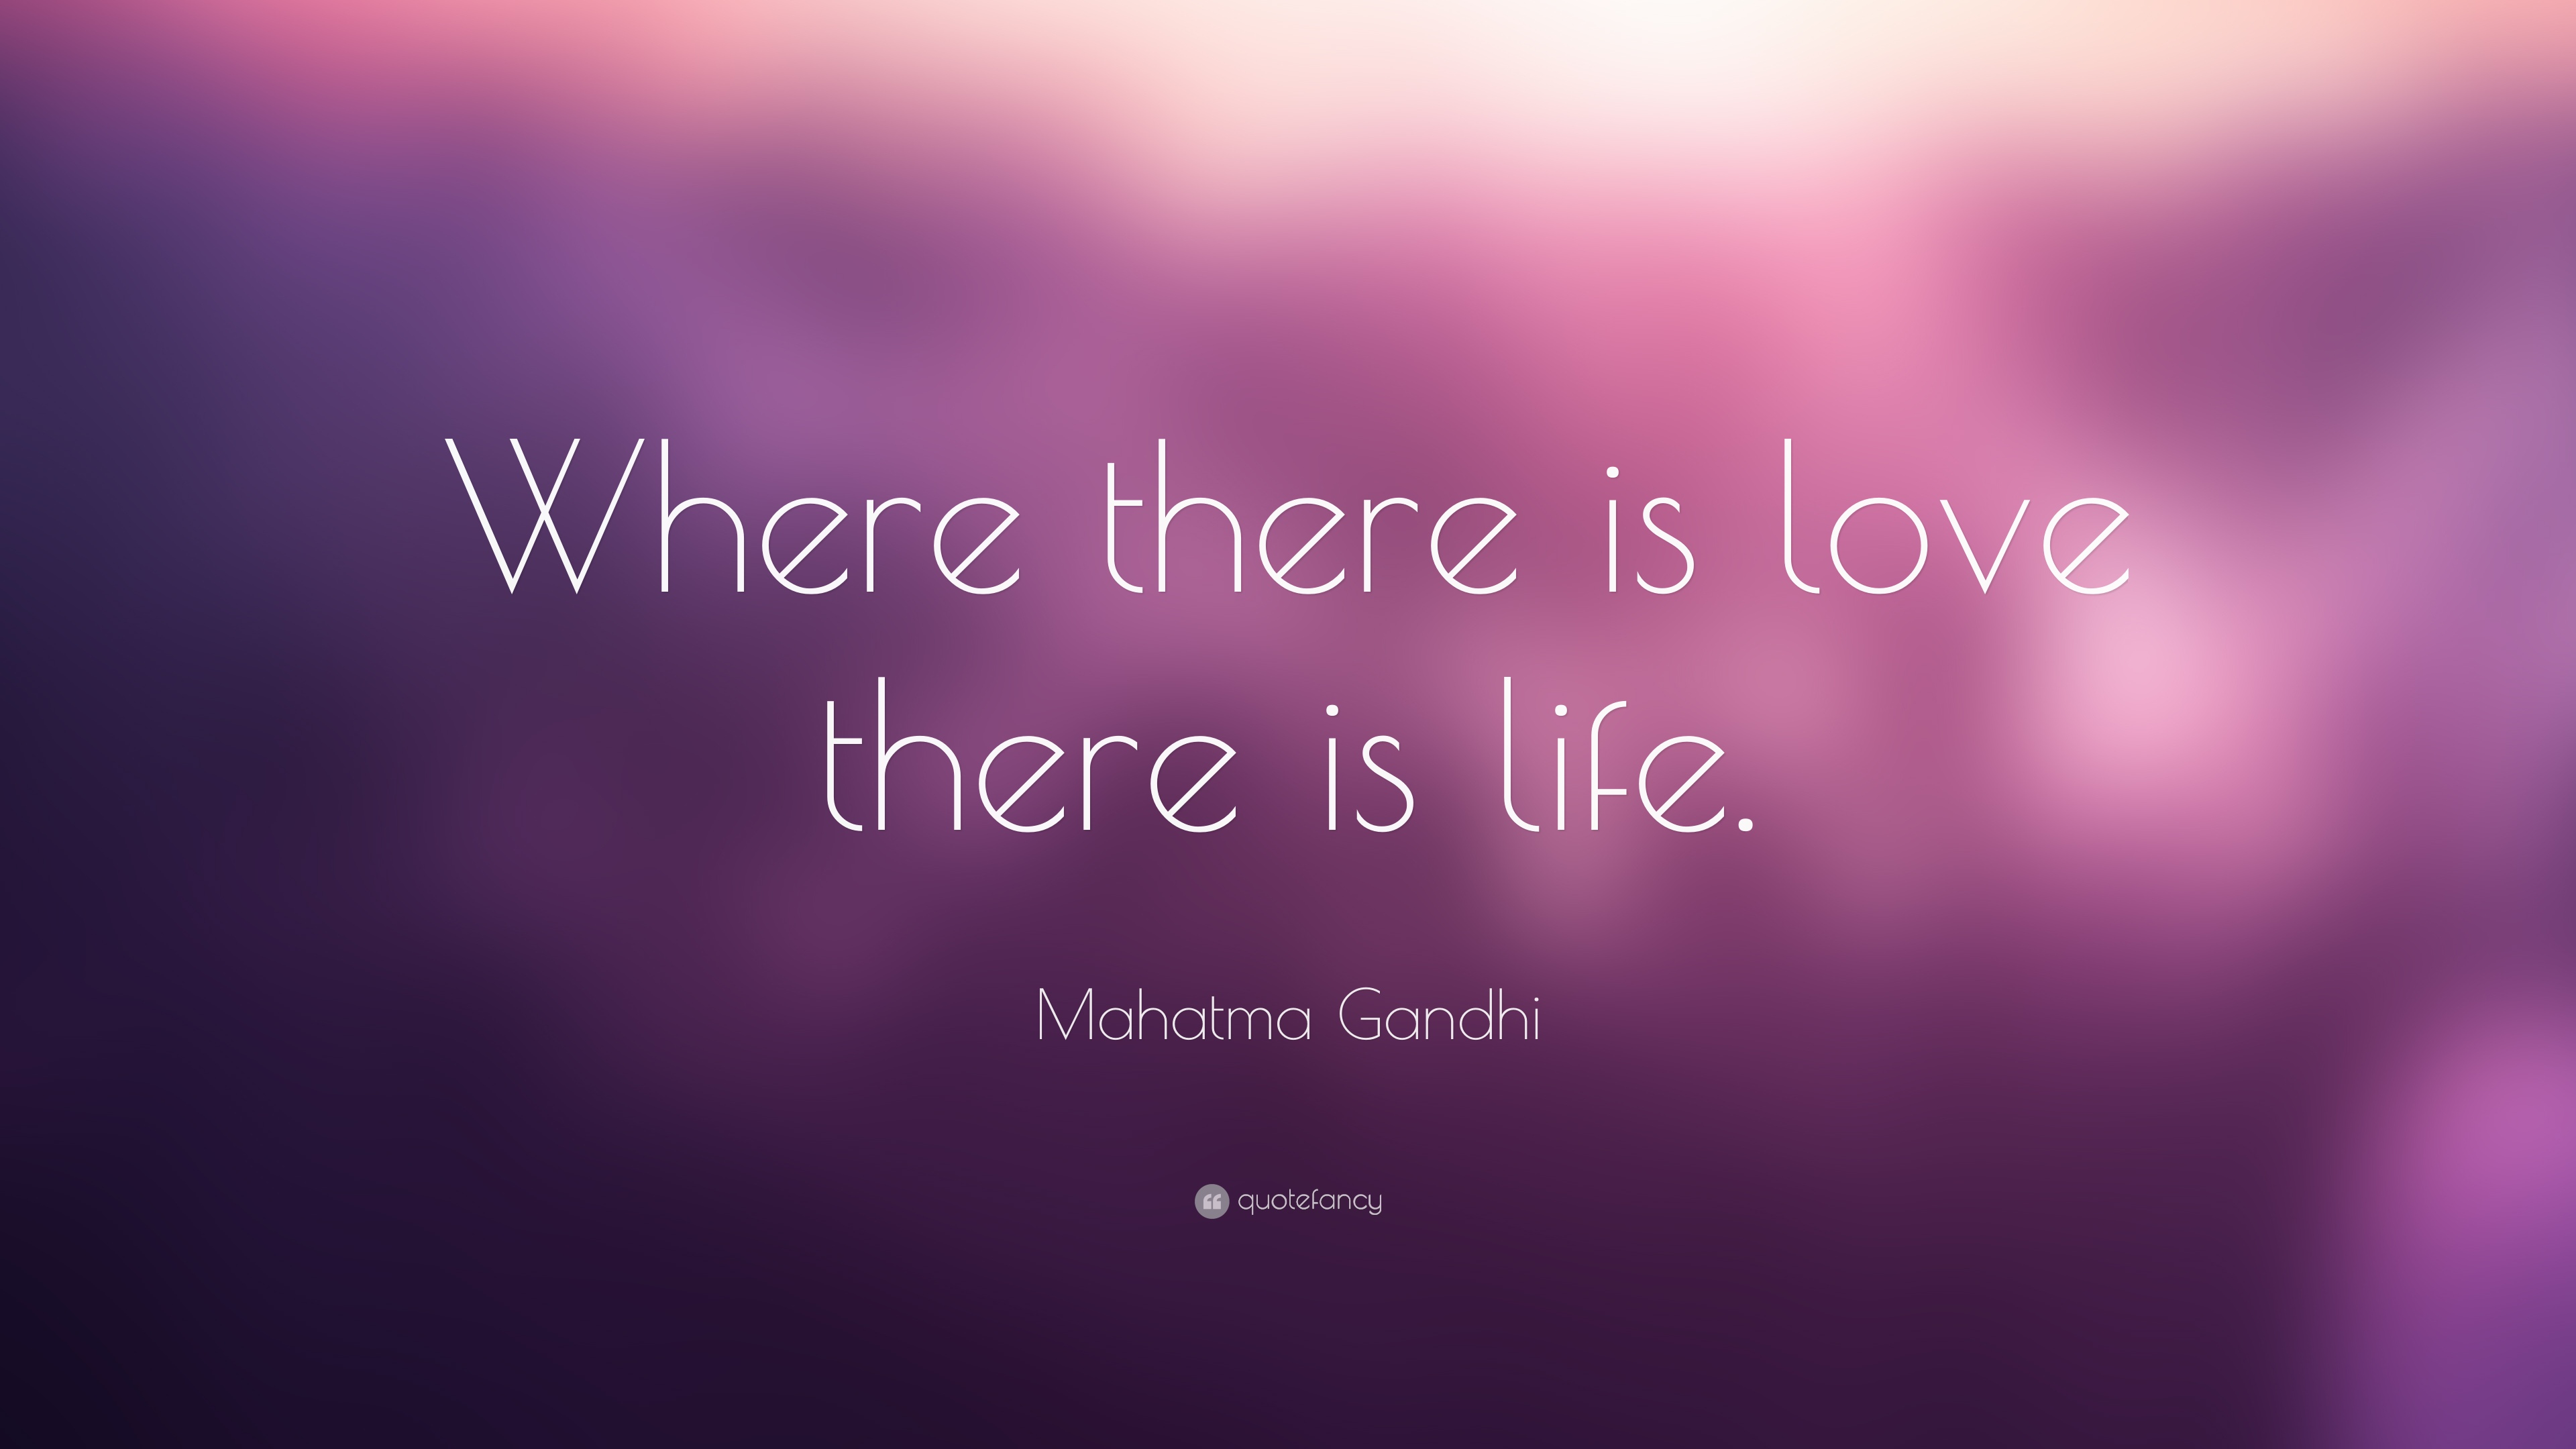 Life Quotes Love Love Quotes 26 Wallpapers  Quotefancy